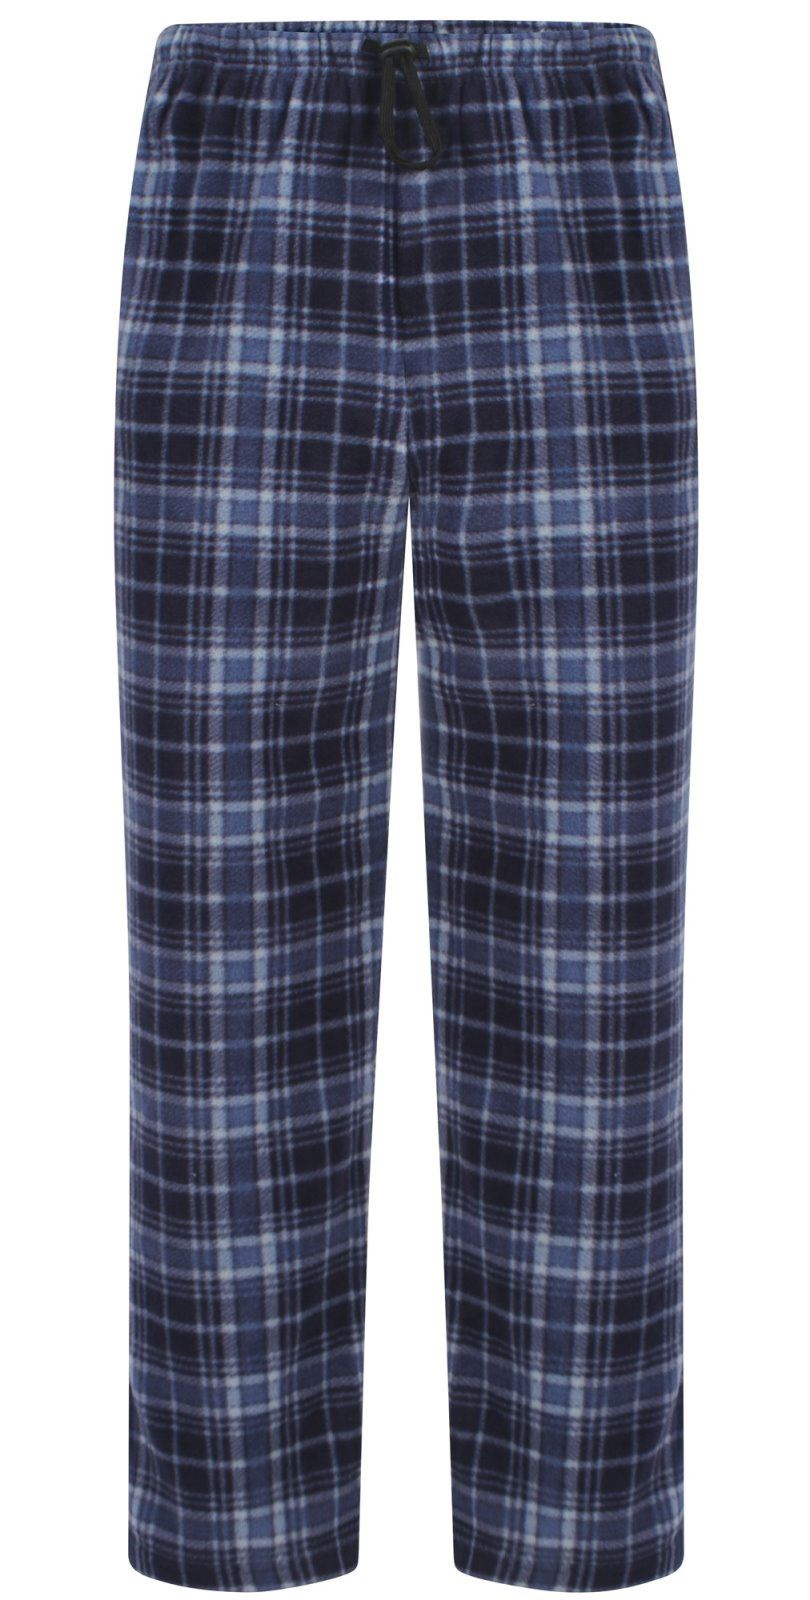 Free shipping BOTH ways on sleep pants for men, from our vast selection of styles. Fast delivery, and 24/7/ real-person service with a smile. Click or call